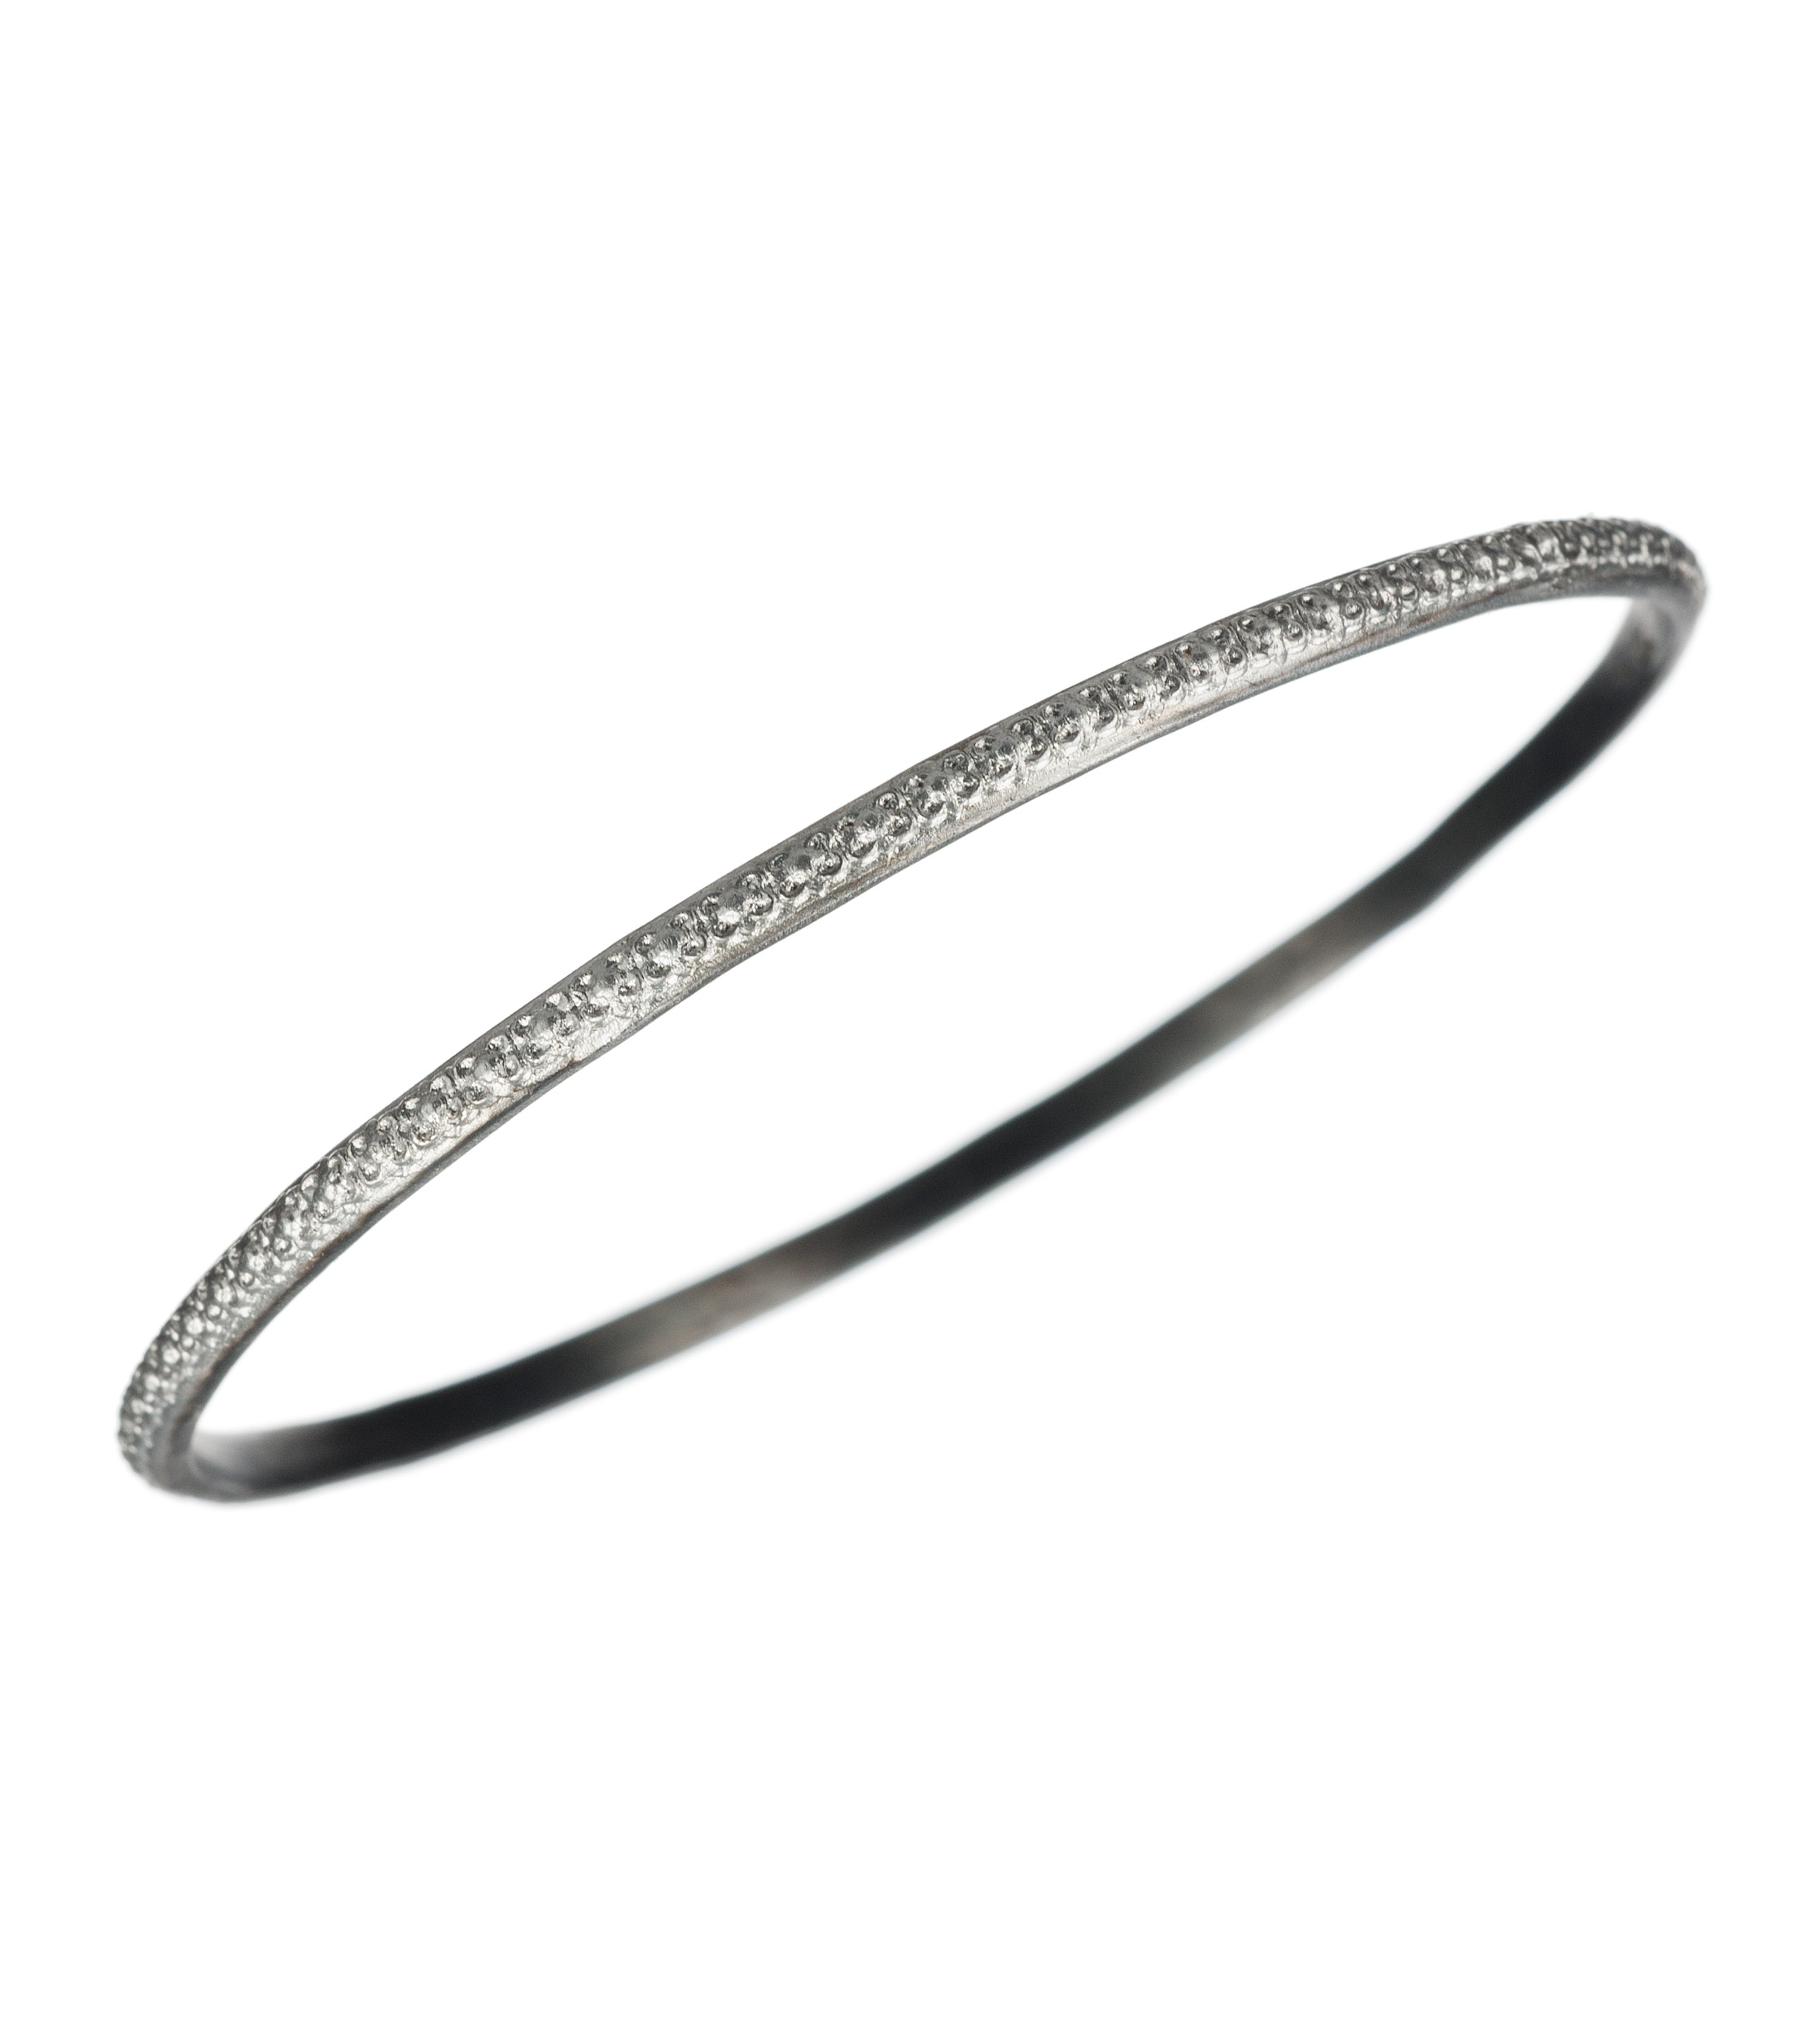 Oxidized sterling silver bangle